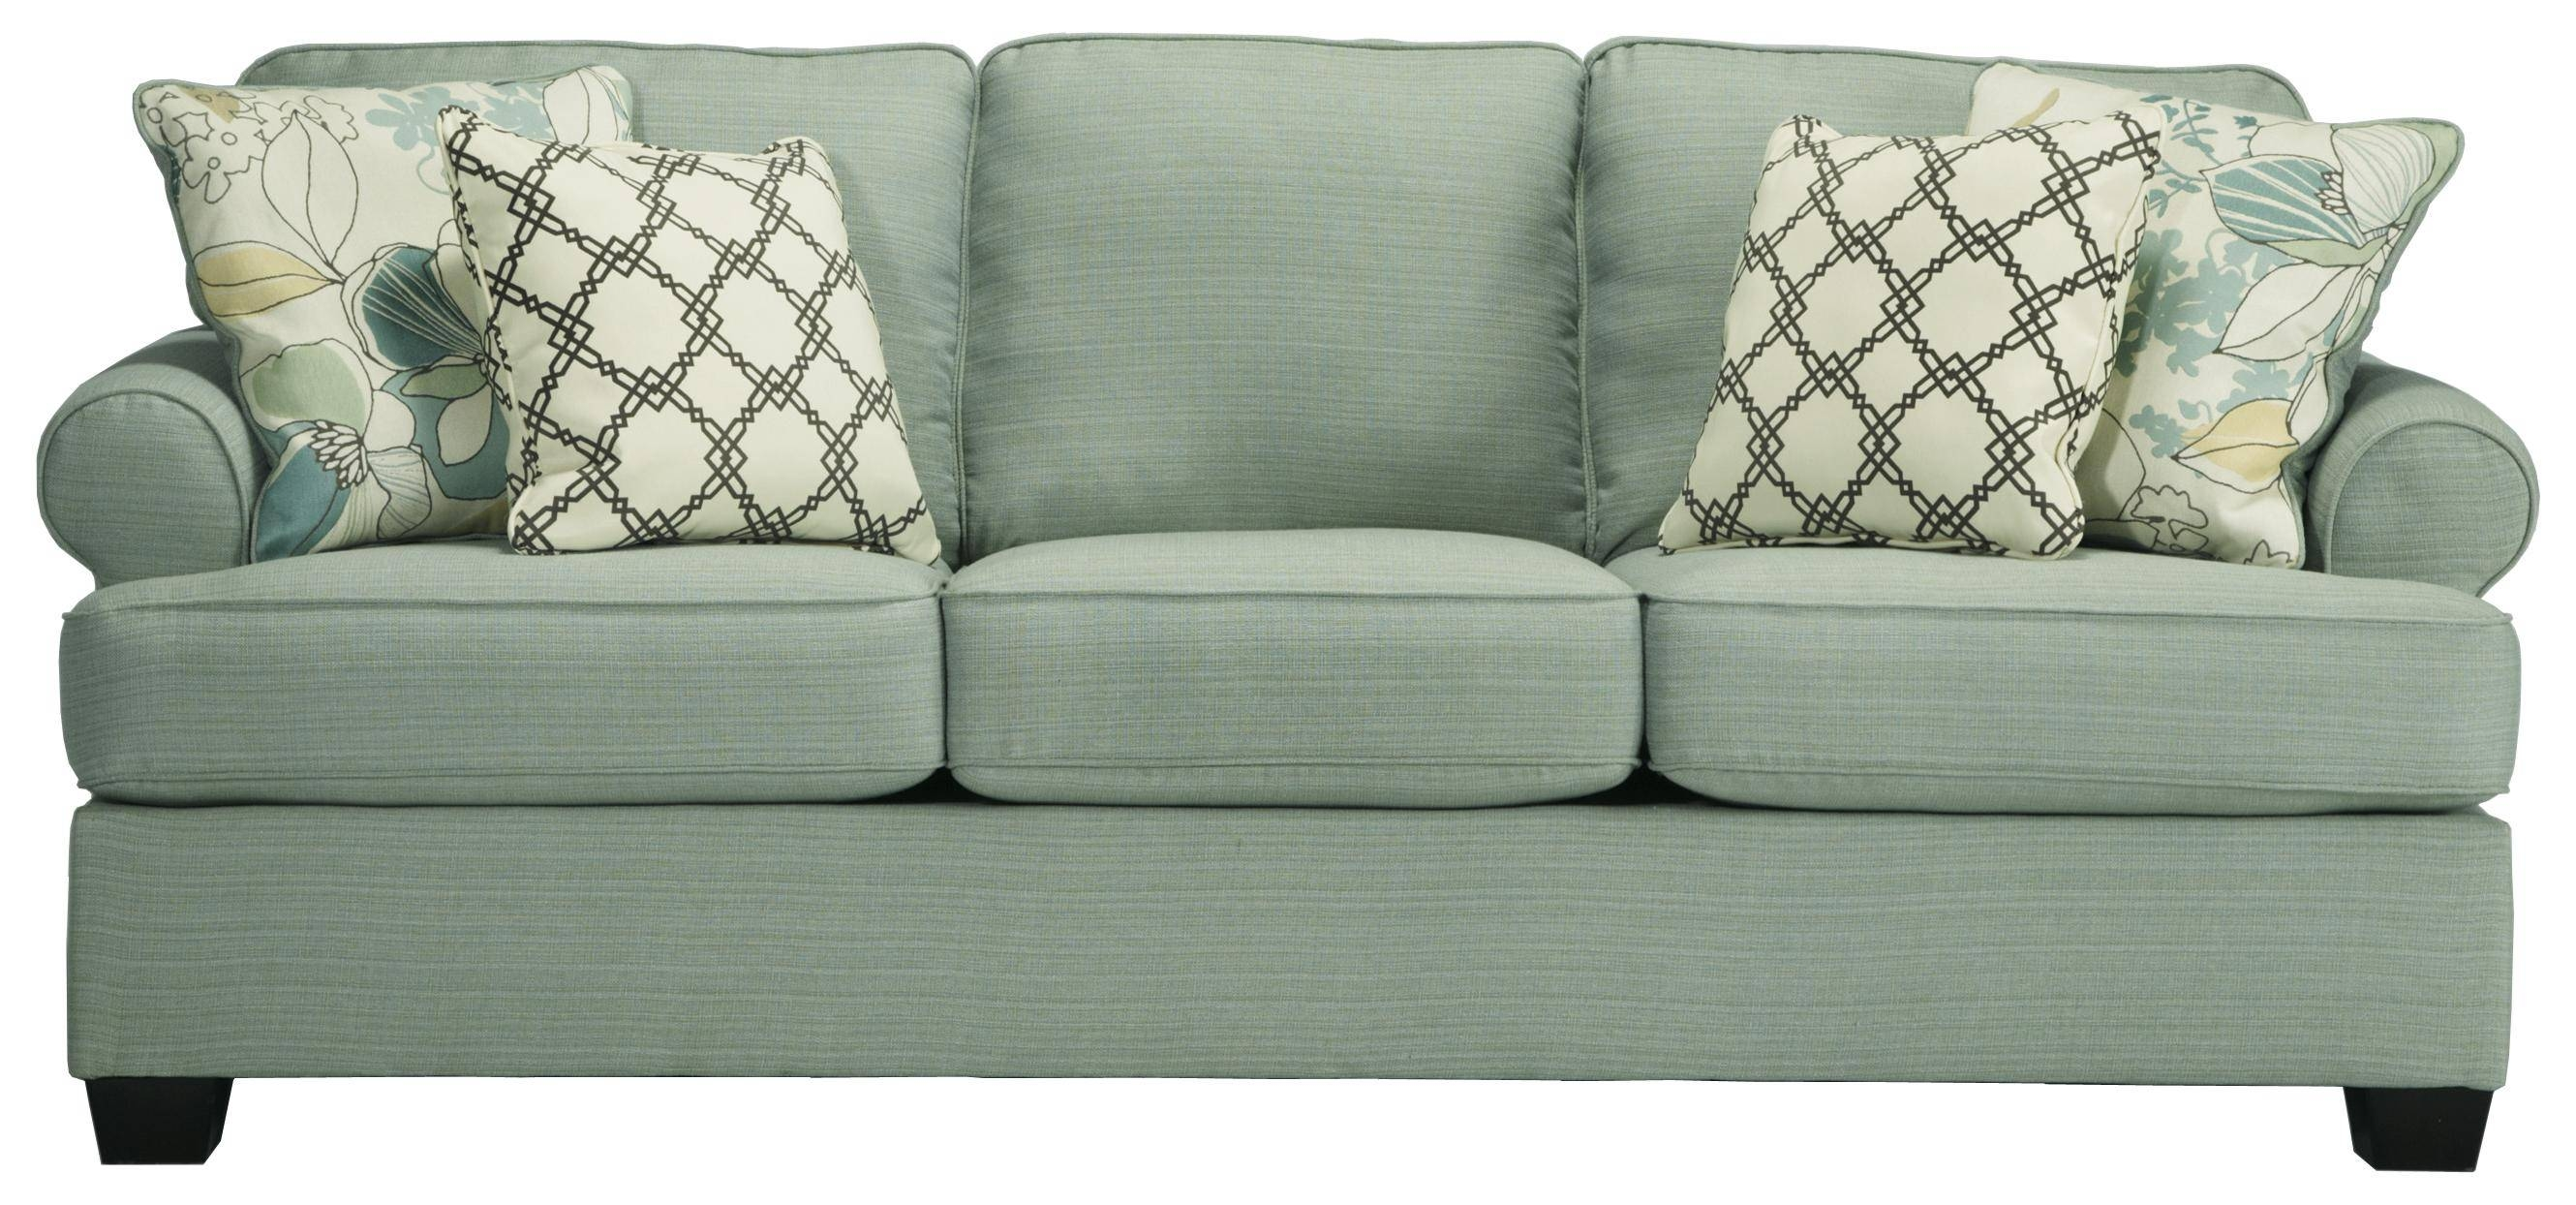 Signature Designashley Daystar - Seafoam Contemporary Sofa with regard to Seafoam Green Sofas (Image 10 of 15)